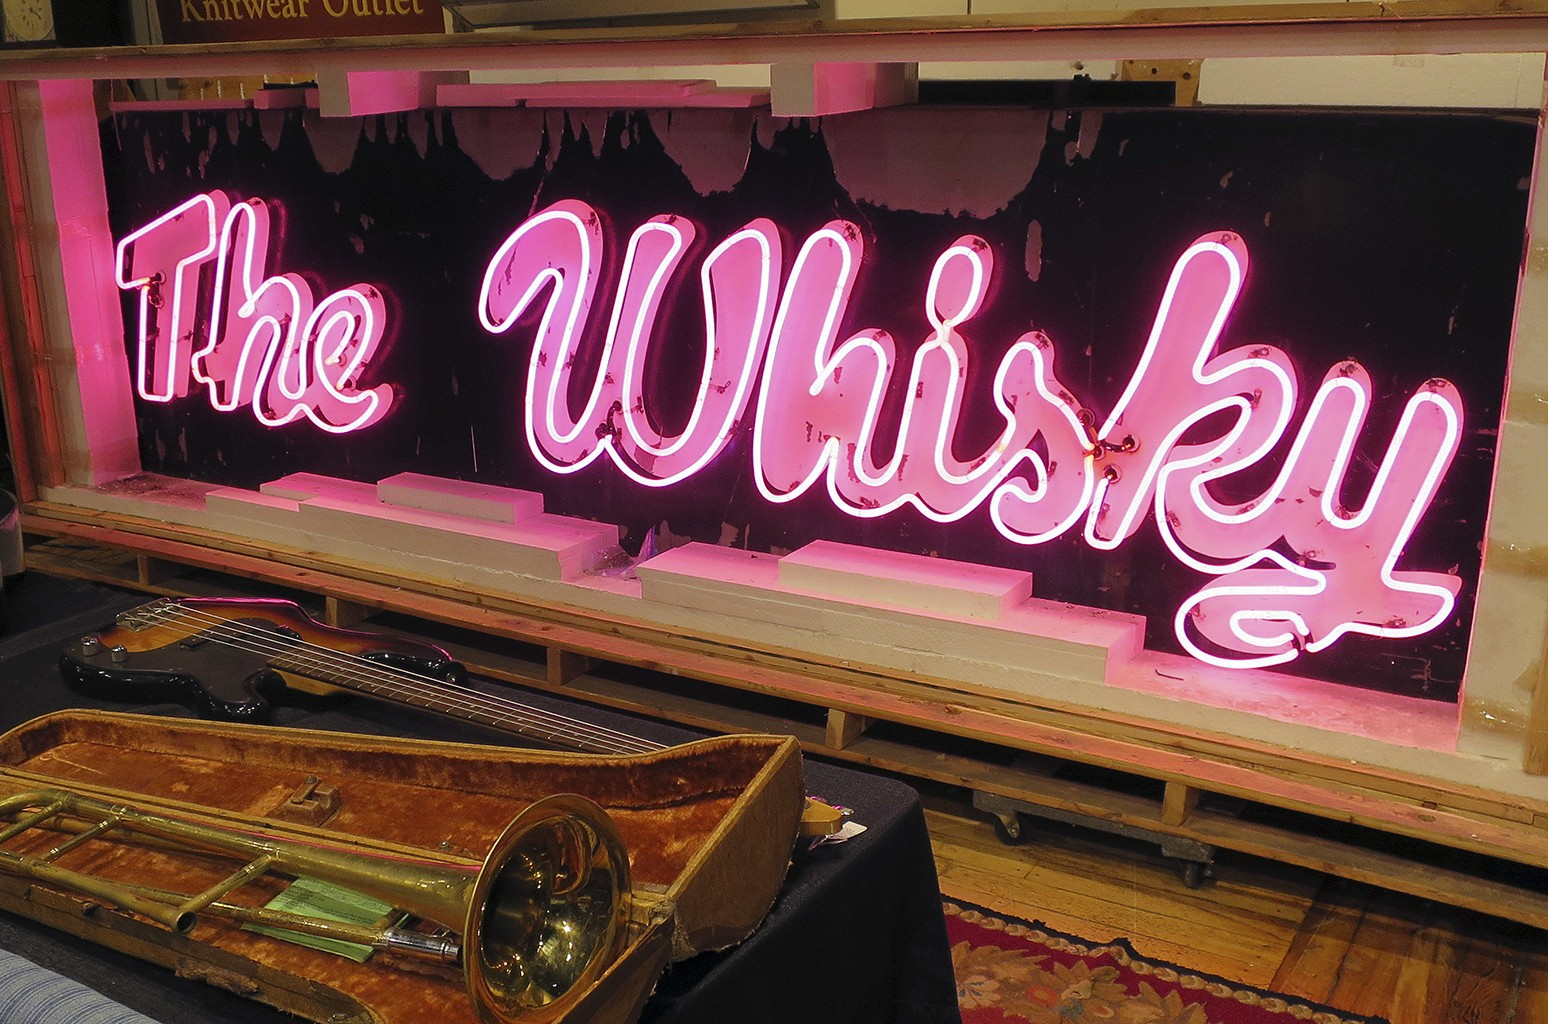 A marquee from the legendary Los Angeles rock 'n' roll club, Whisky a Go Go, glows at the Saco River Auction Co., in Biddeford, Maine on Jan. 20, 2017.